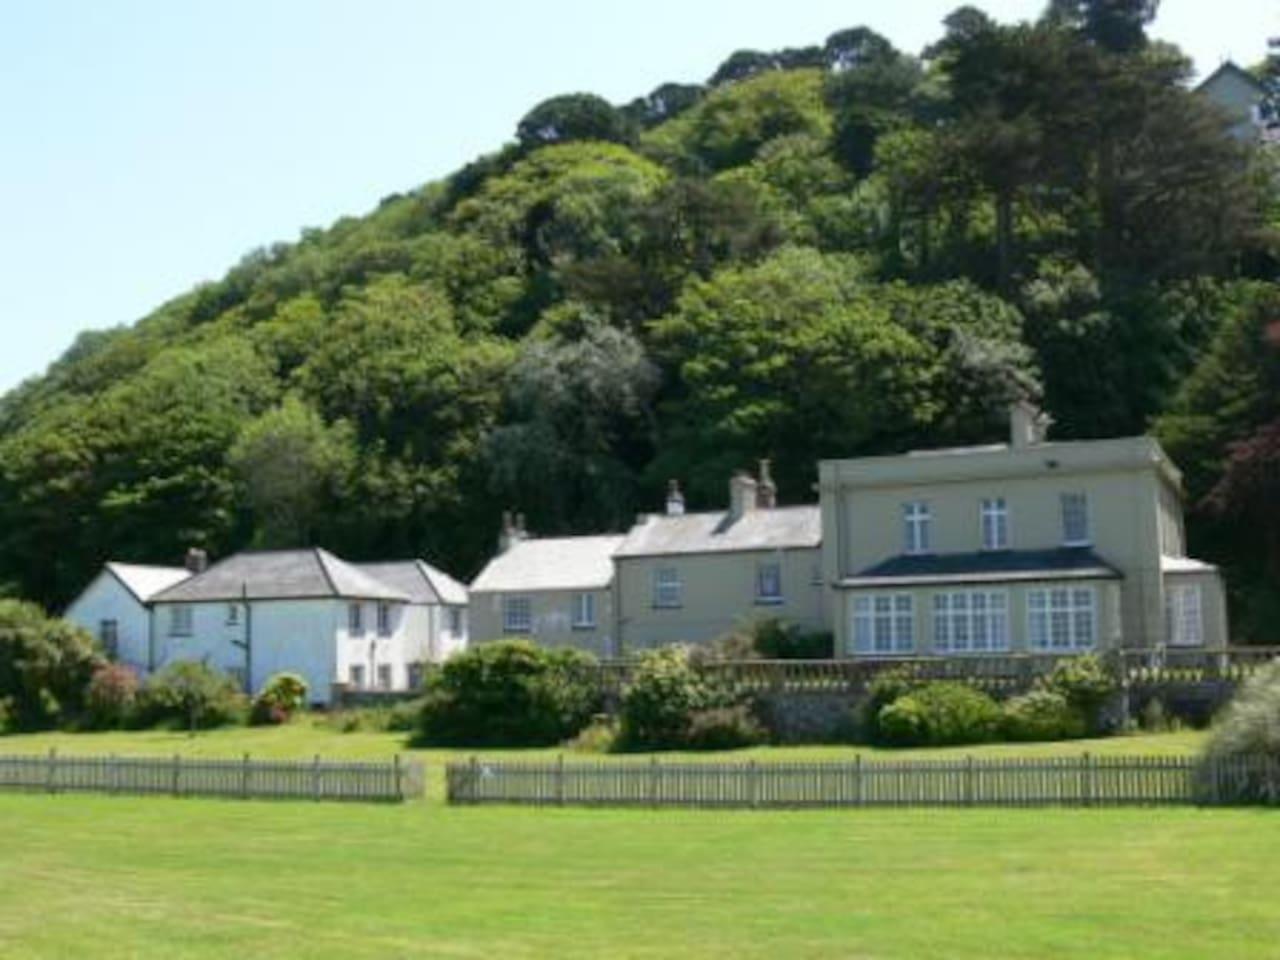 The Manor House Lynmouth - Possibility Cottage & Realms House on left